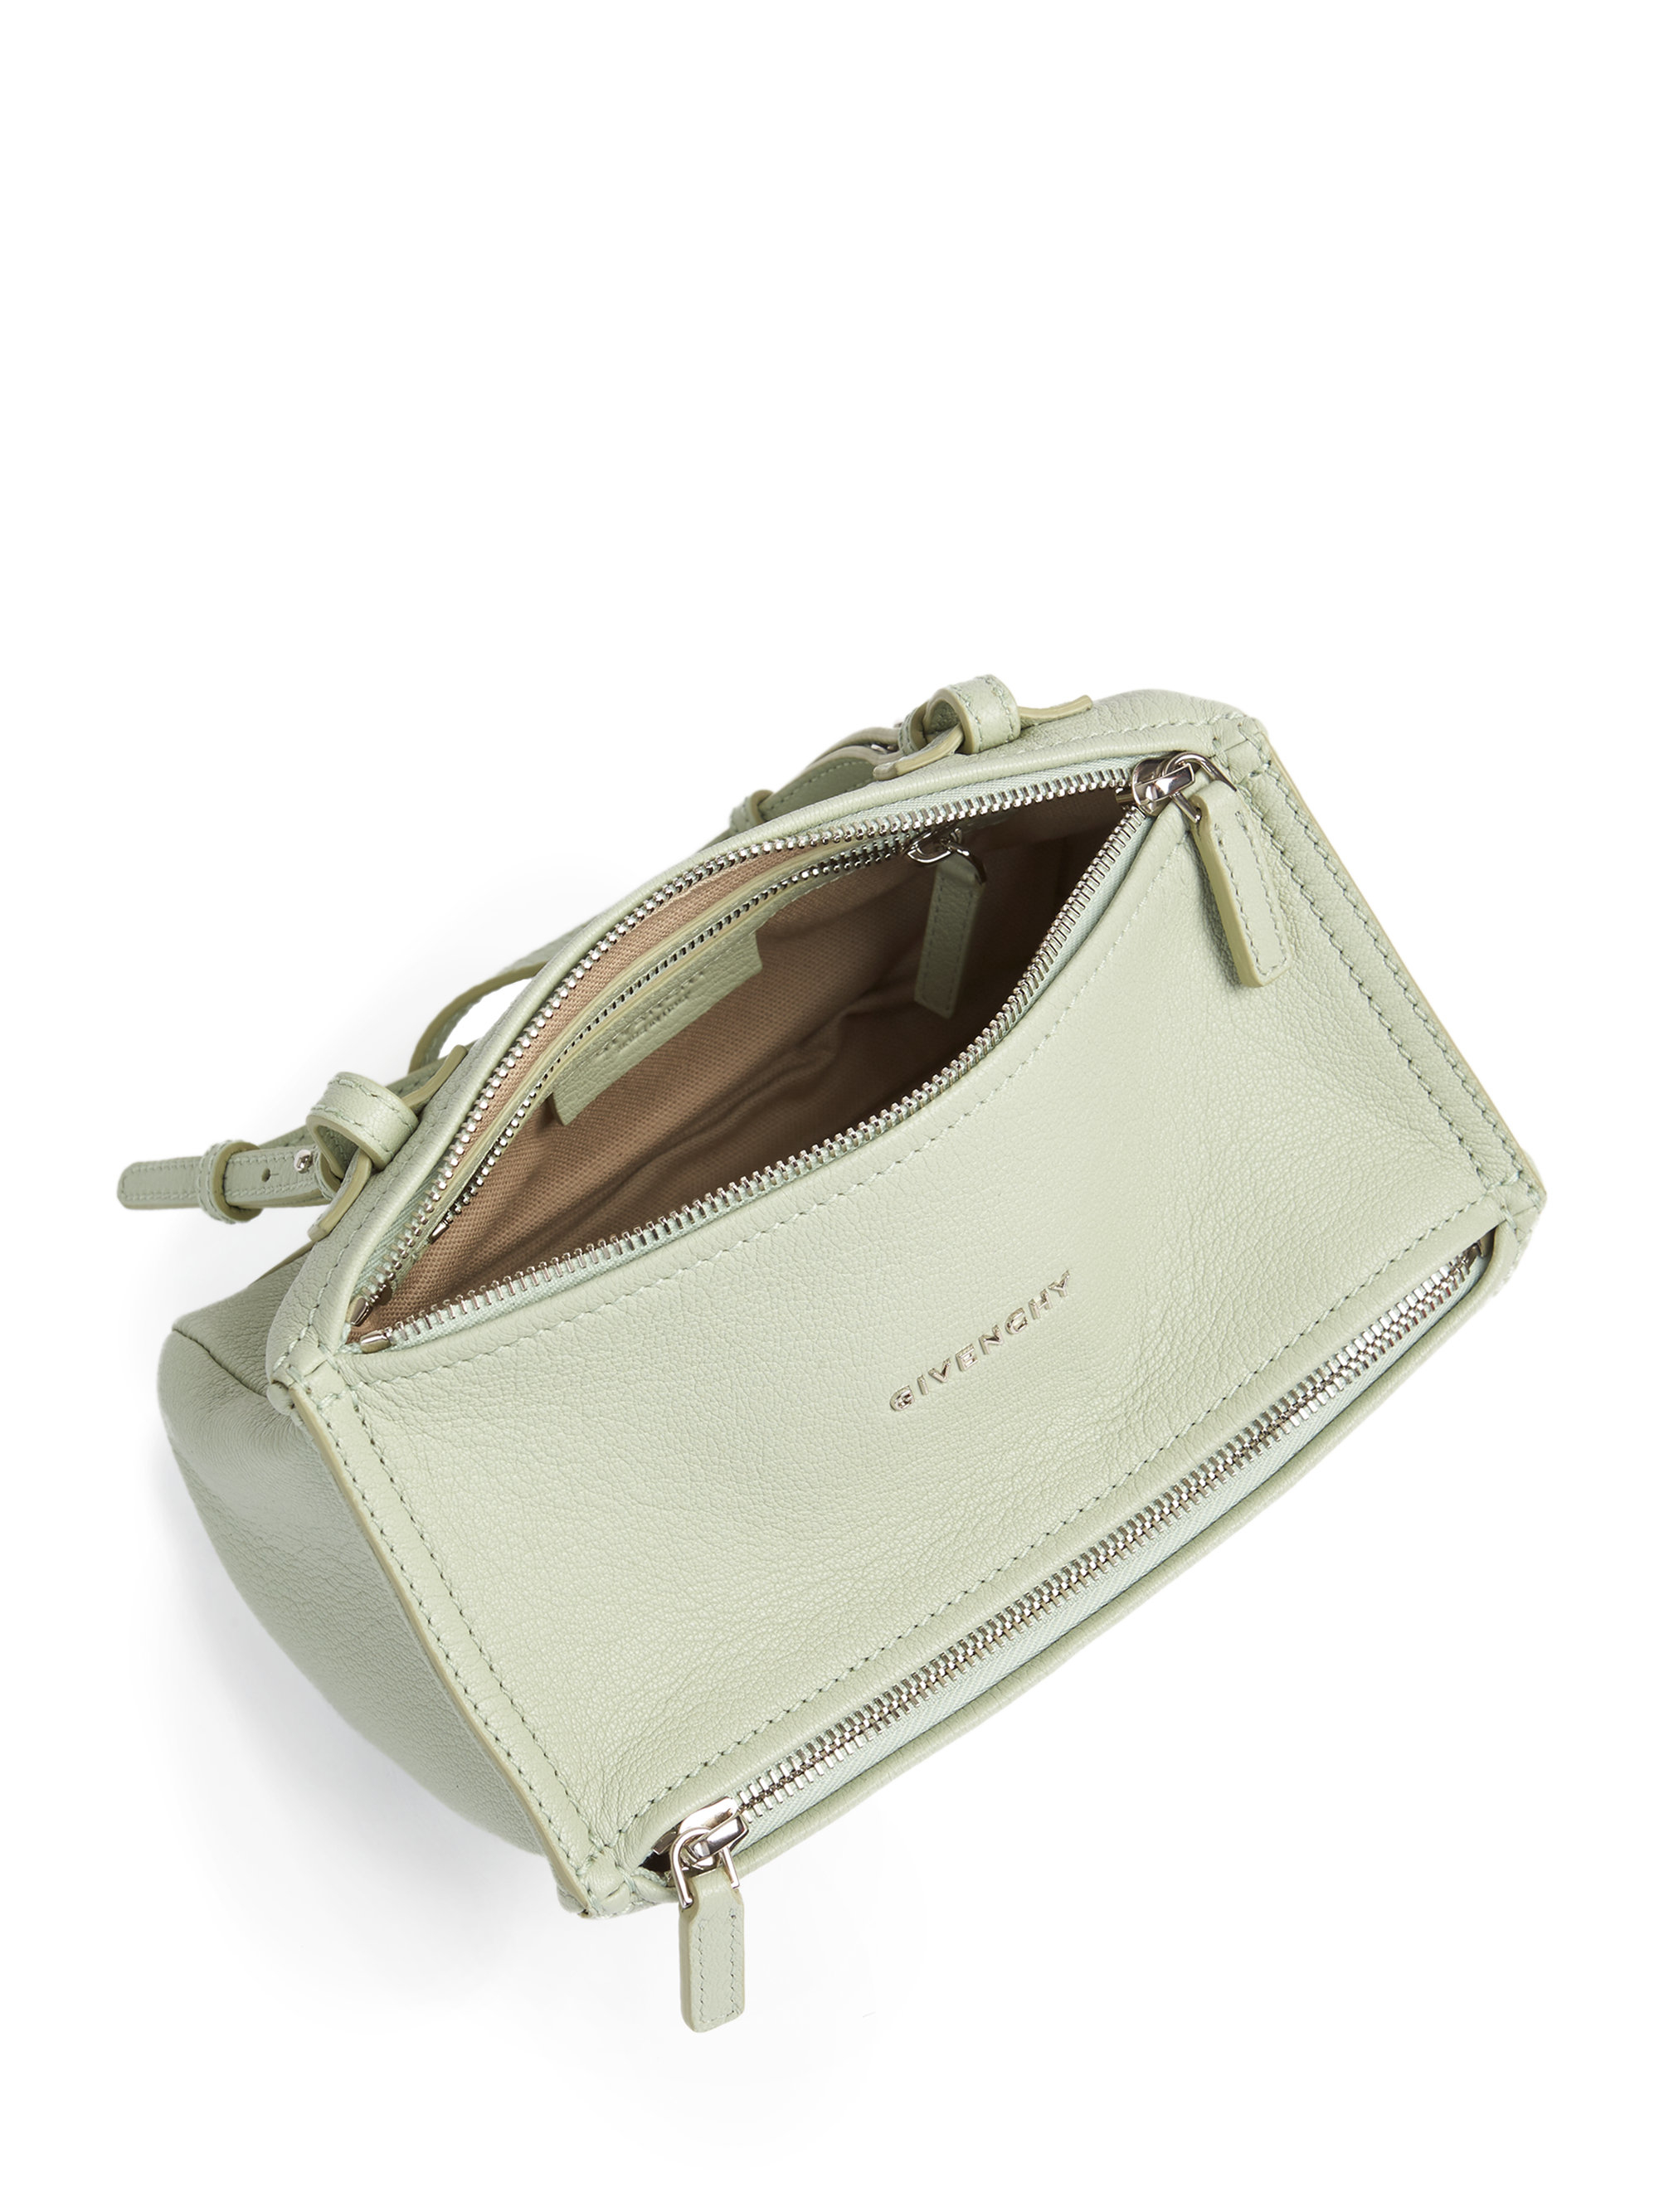 0423f41b6746 Lyst - Givenchy Pandora Mini Leather Shoulder Bag in White